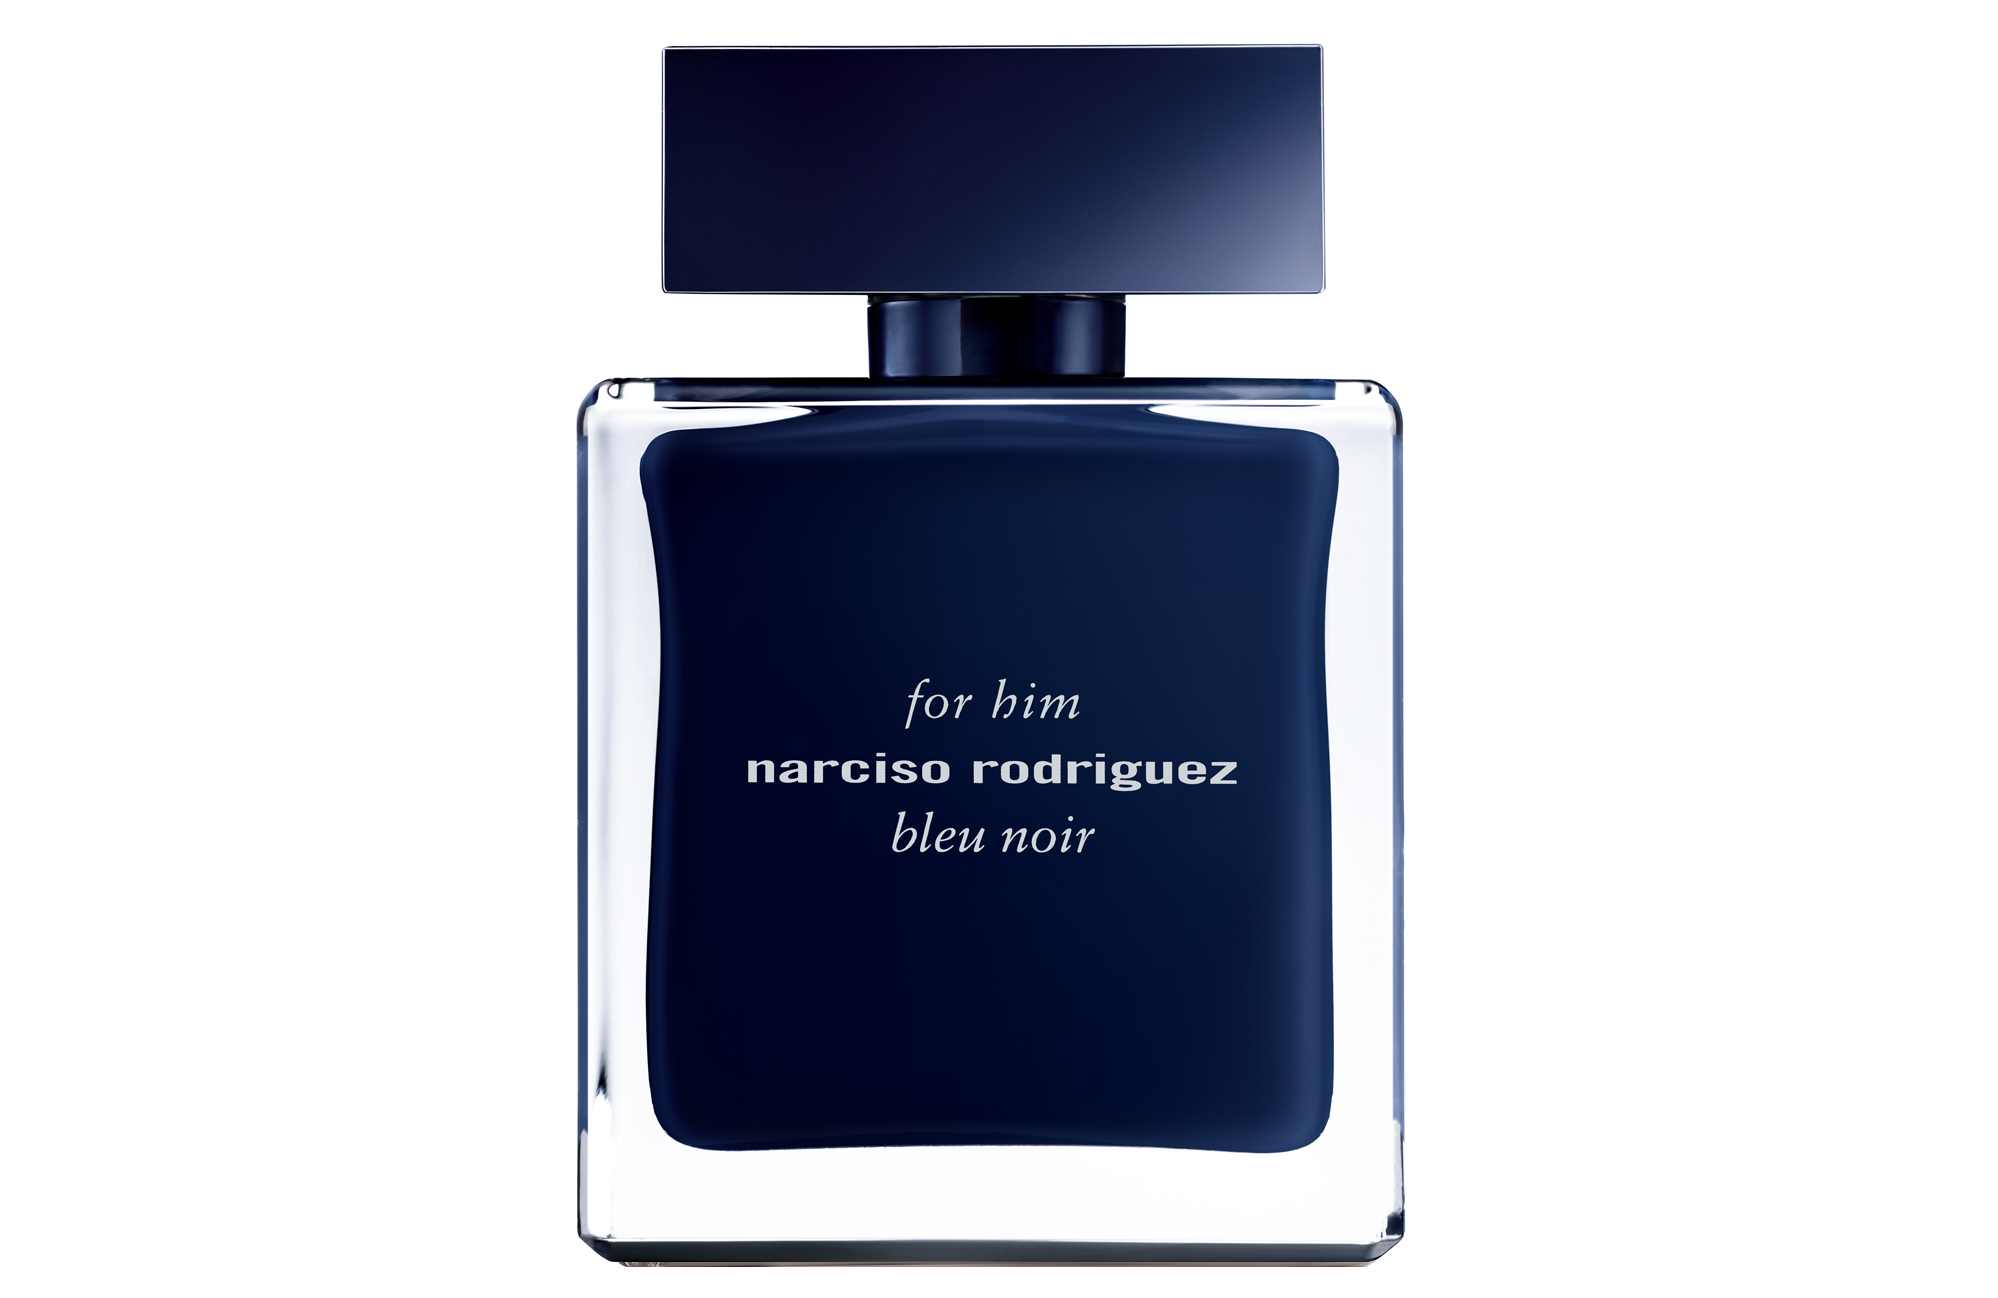 Bottle of Narciso Rodriguez Bleu Noir Eau de toilette